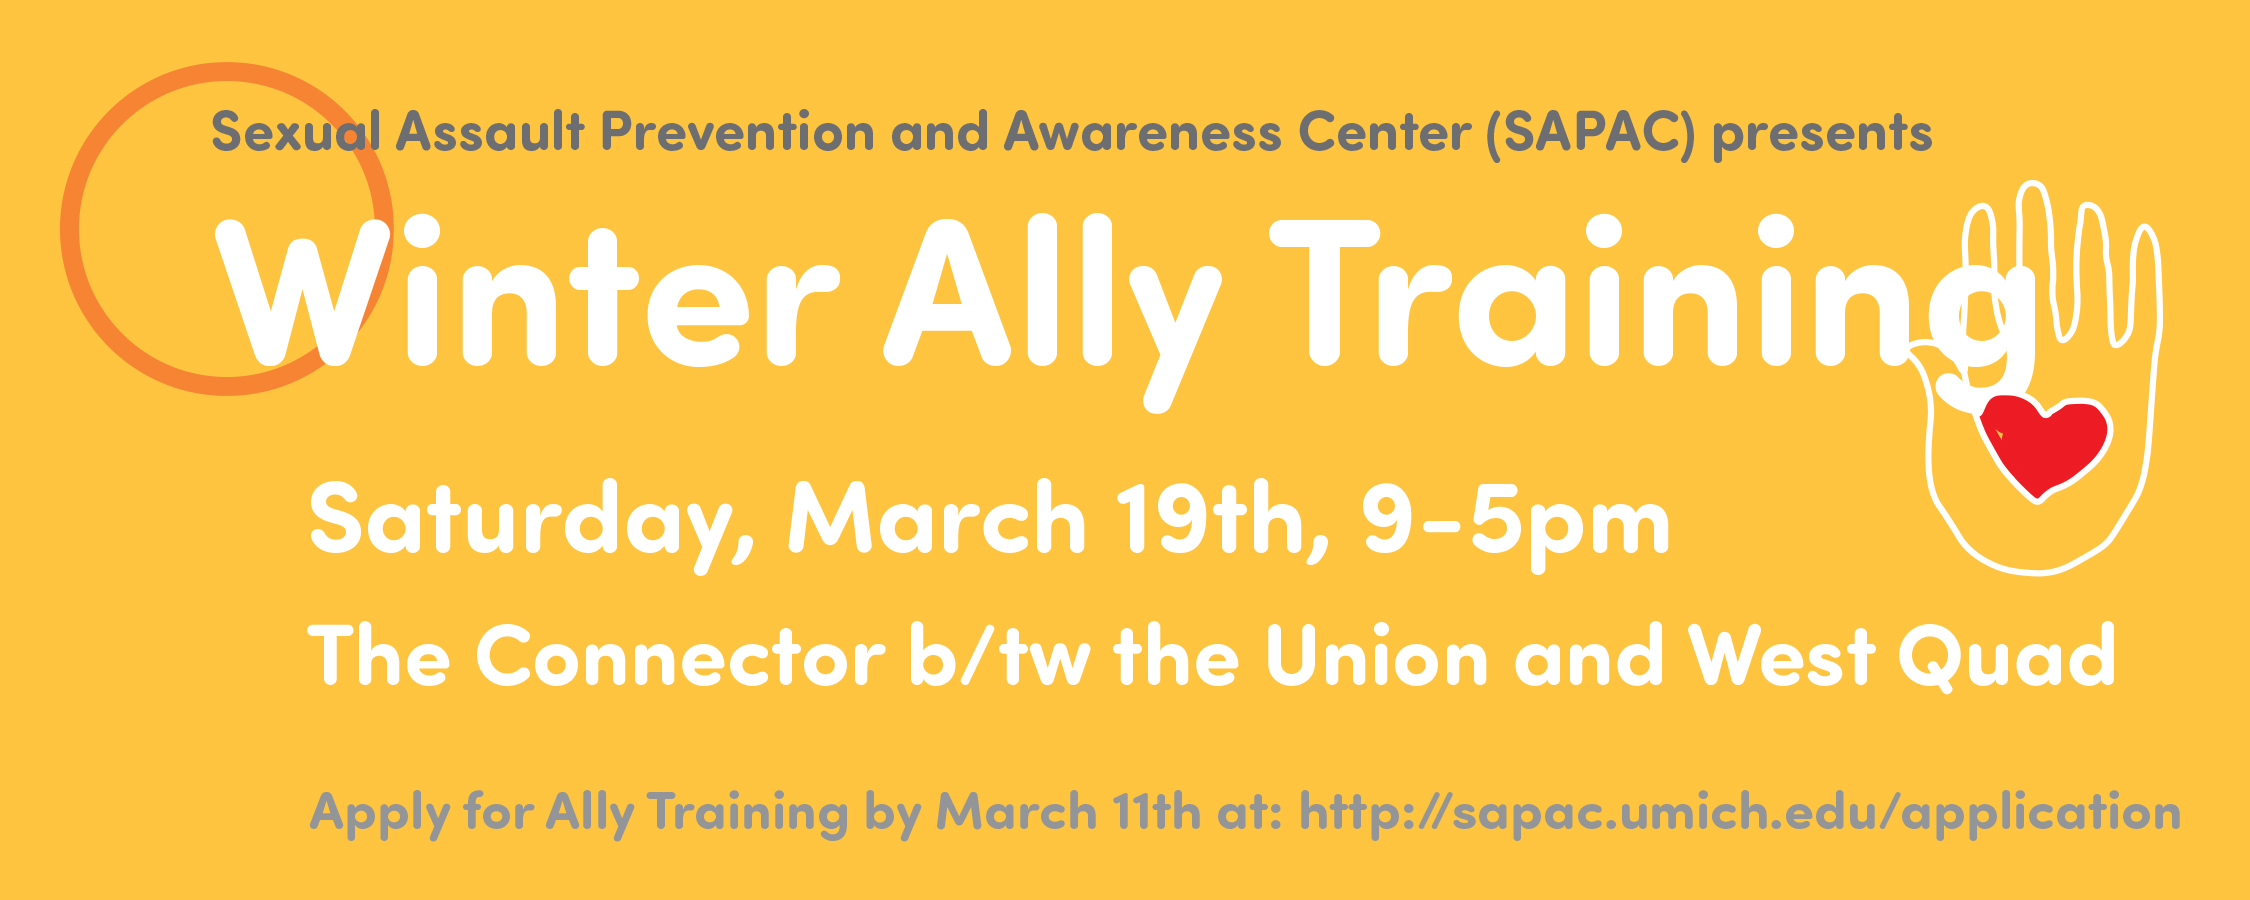 Winter Ally Training Cover Photo and Information